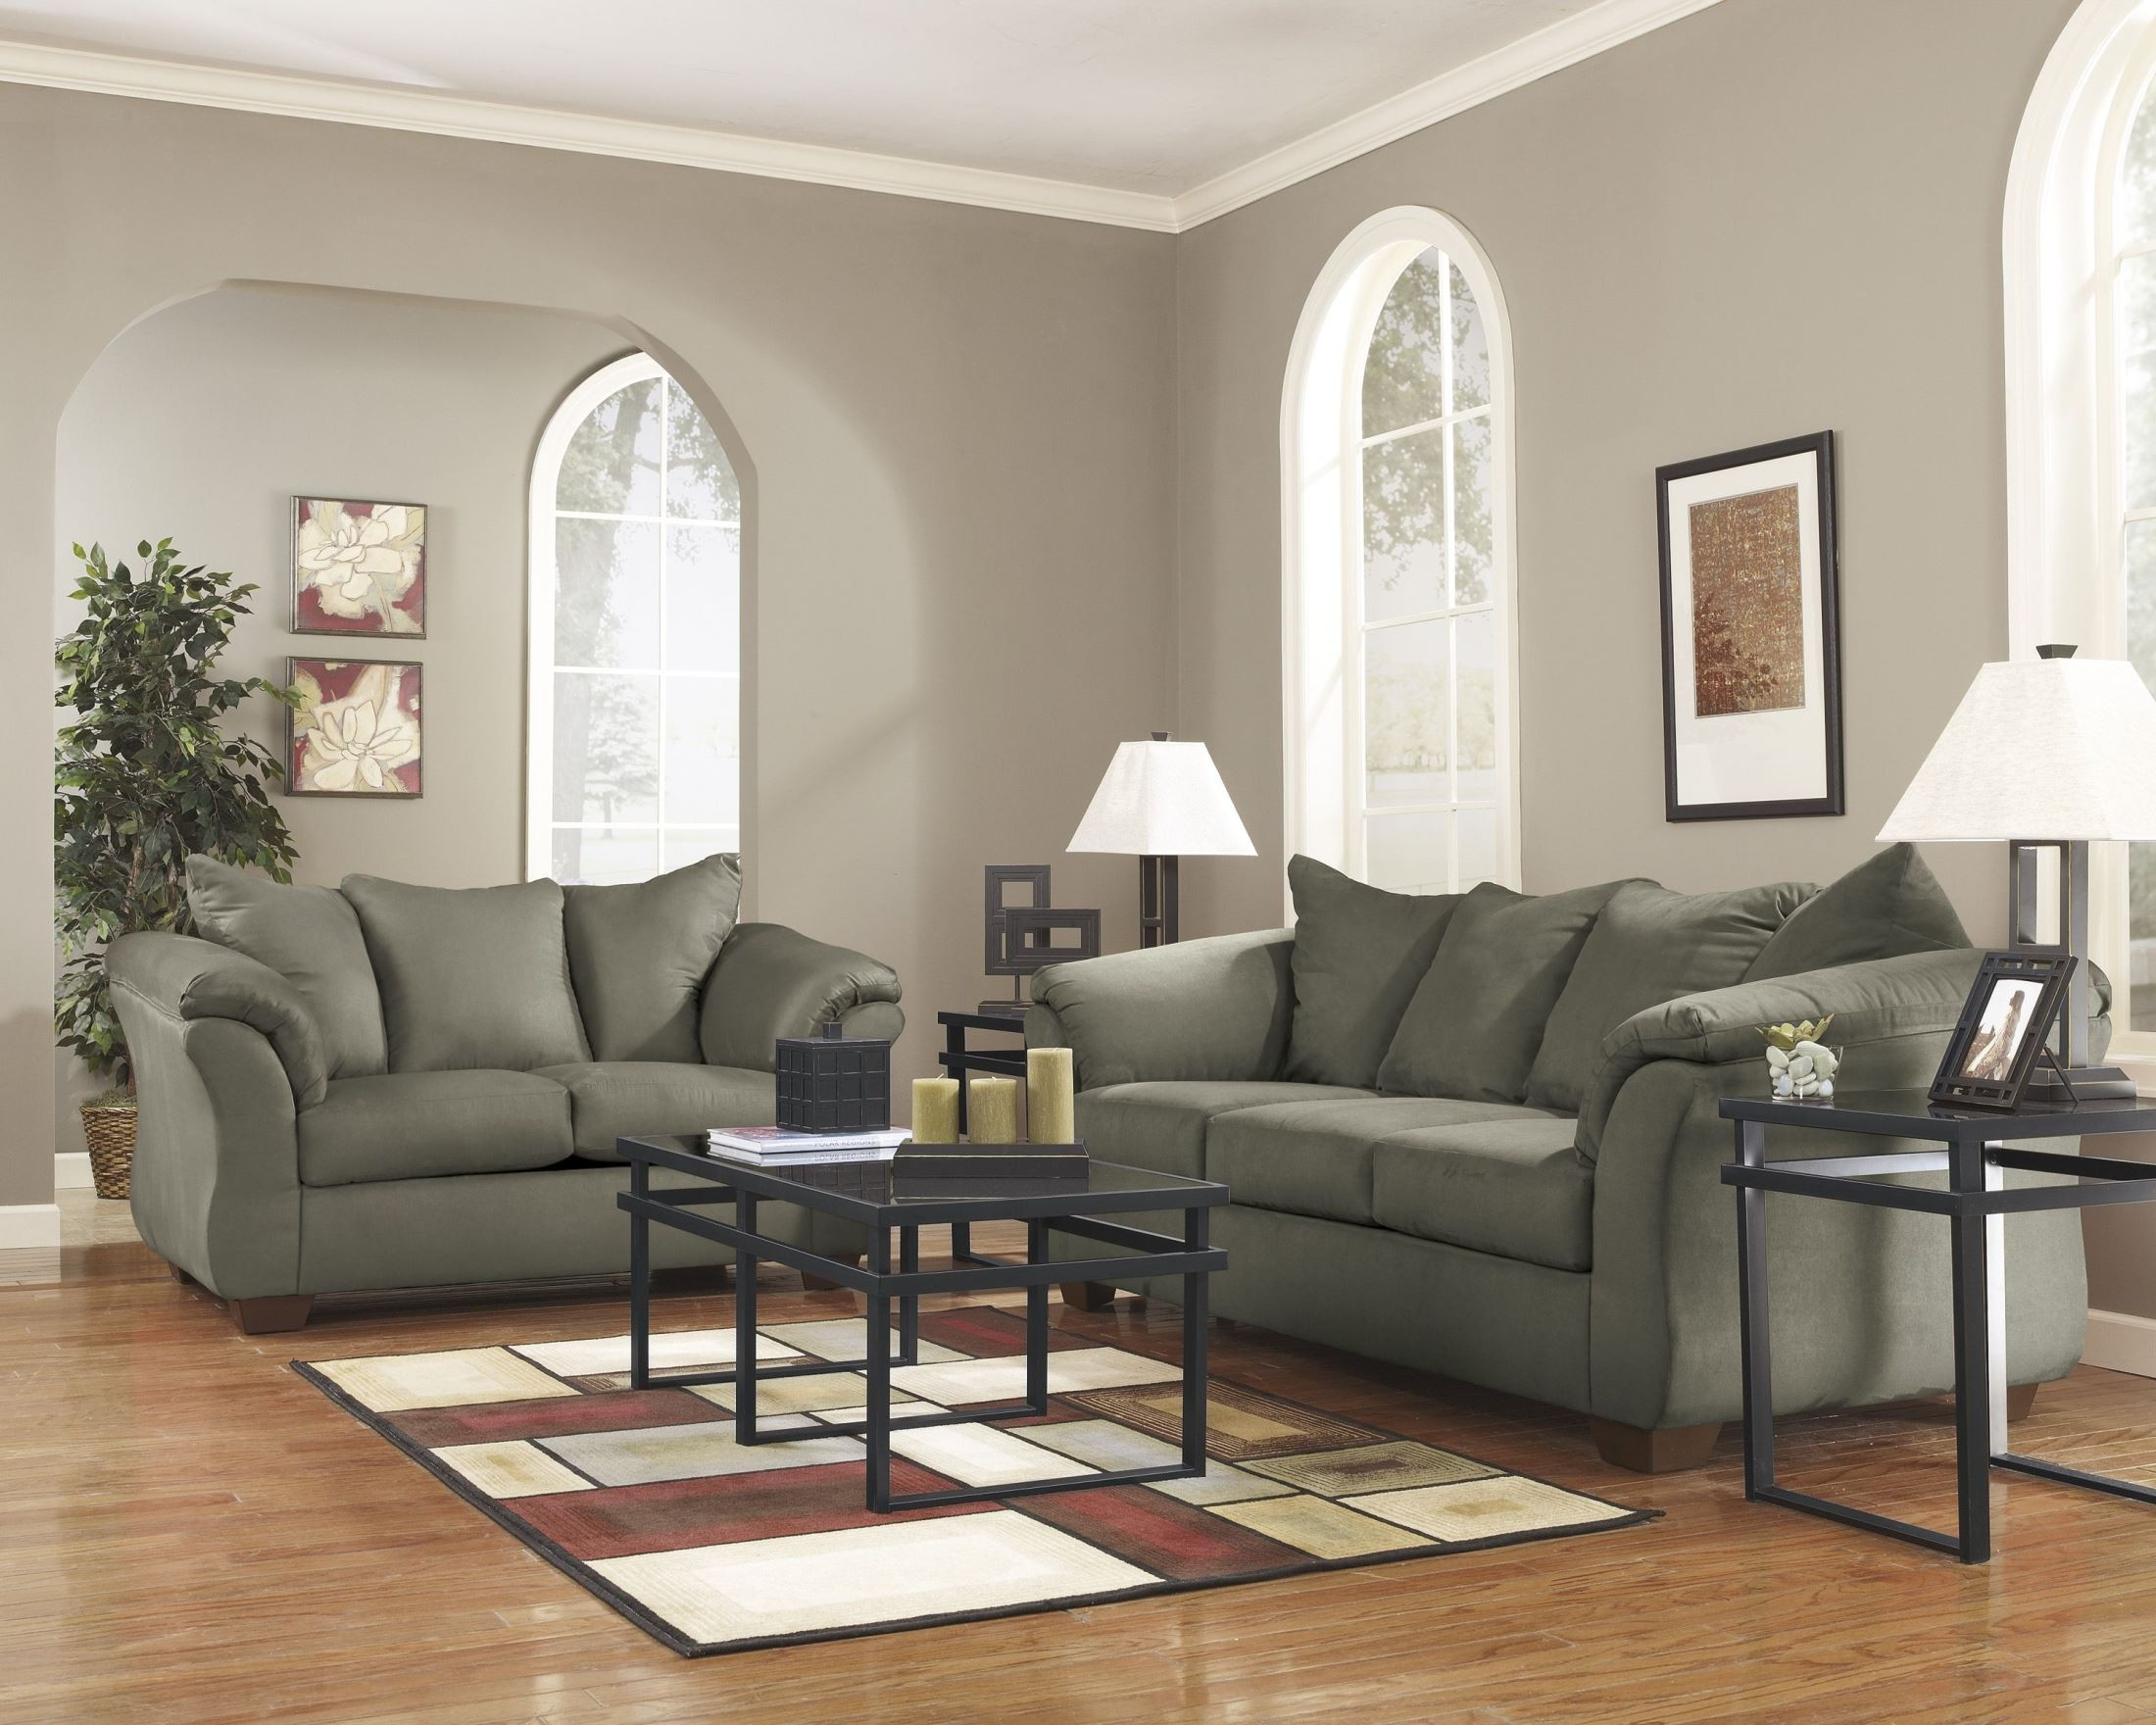 Darcy Sage Chaise Sectional From Ashley 7500318 Coleman Furniture